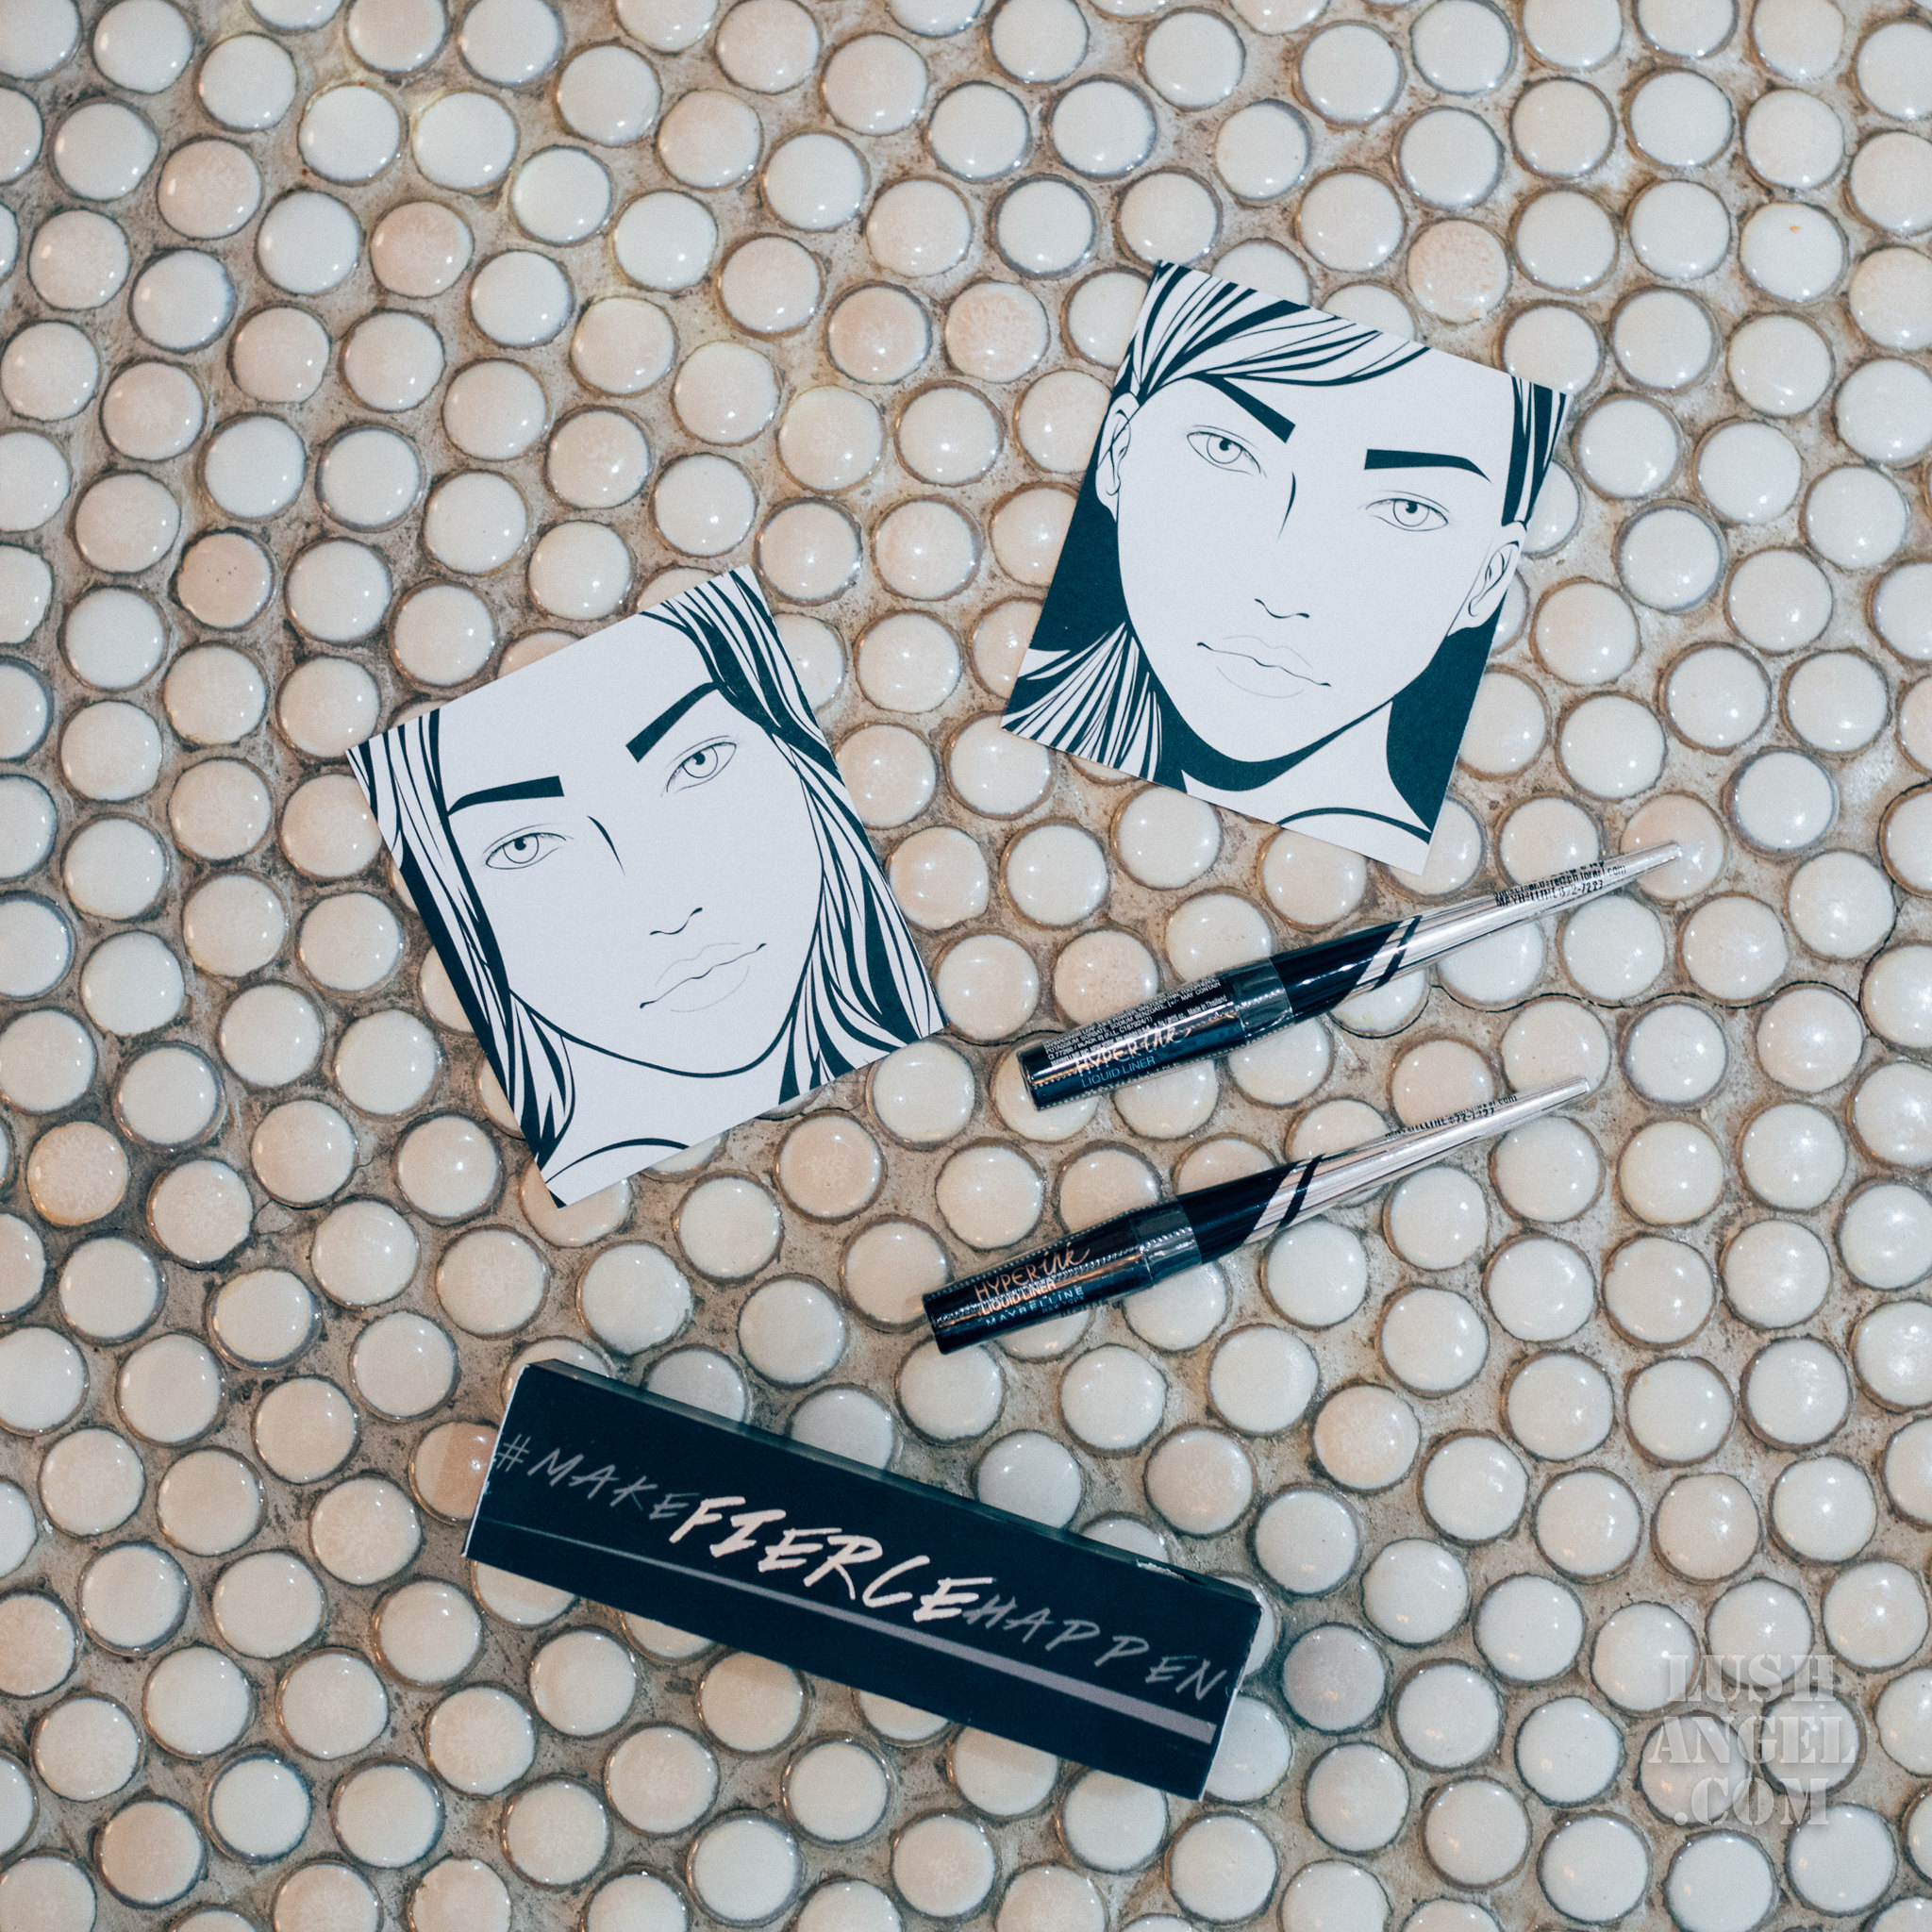 Maybelline Hyperink Liquid Liner Review Lush Angel Hyper Sharp Wing Eyeliner